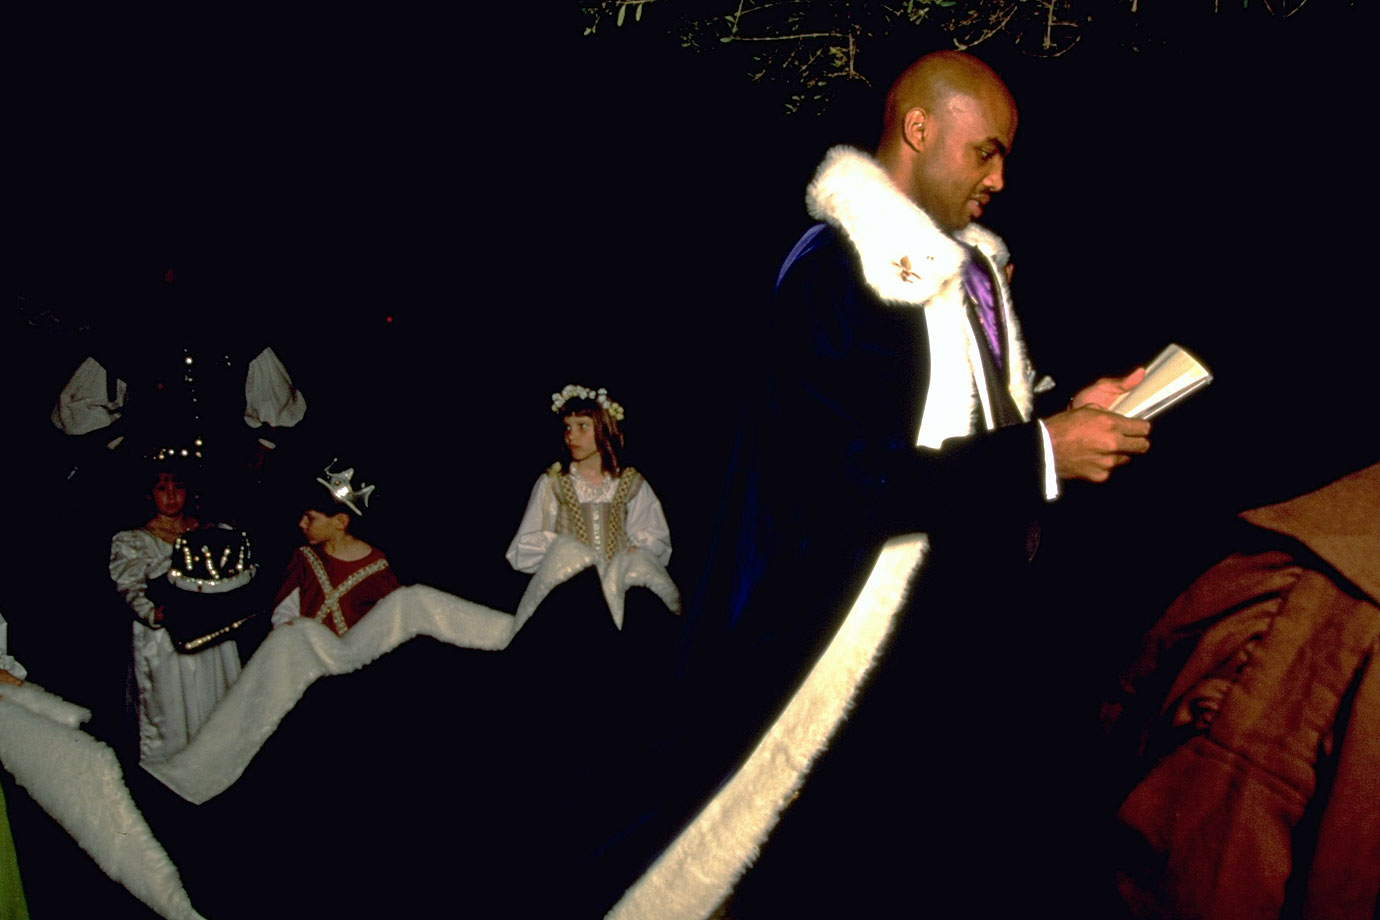 Charles Barkley dresses in royal regalia with children holding his cape at a charity fundraiser.